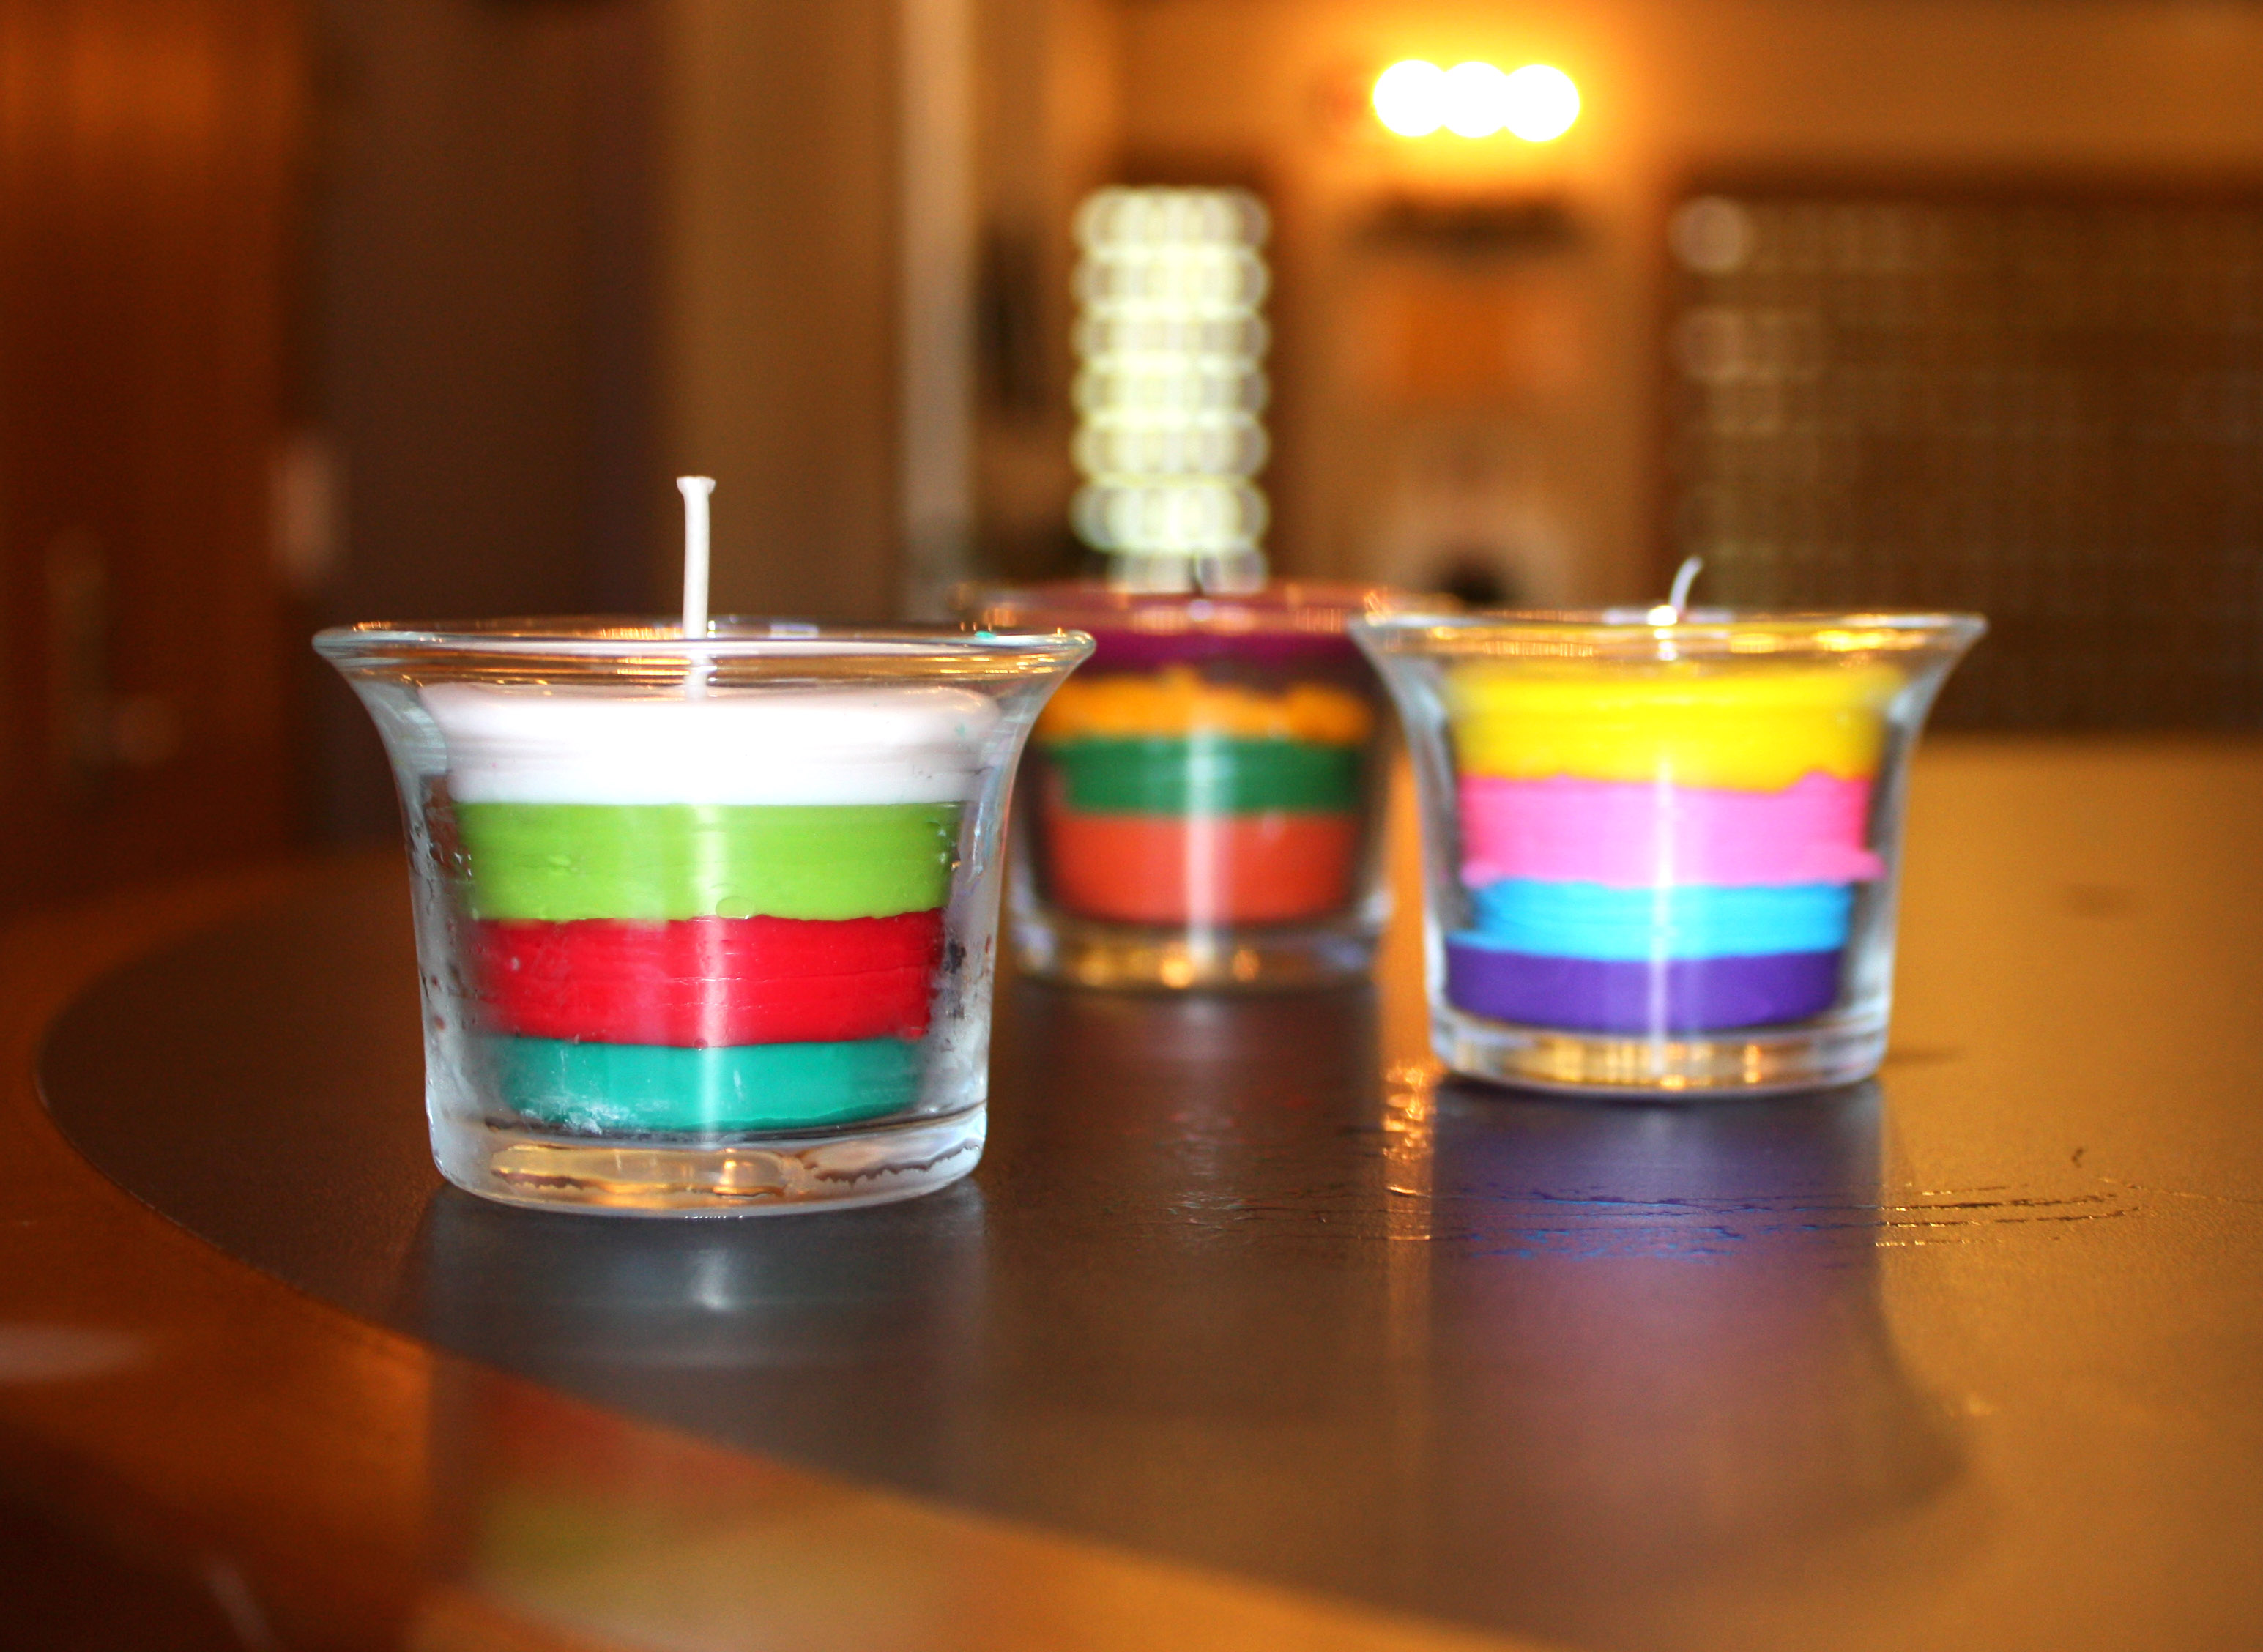 Layered Crayon Candles 16 Steps With Pictures Instructables